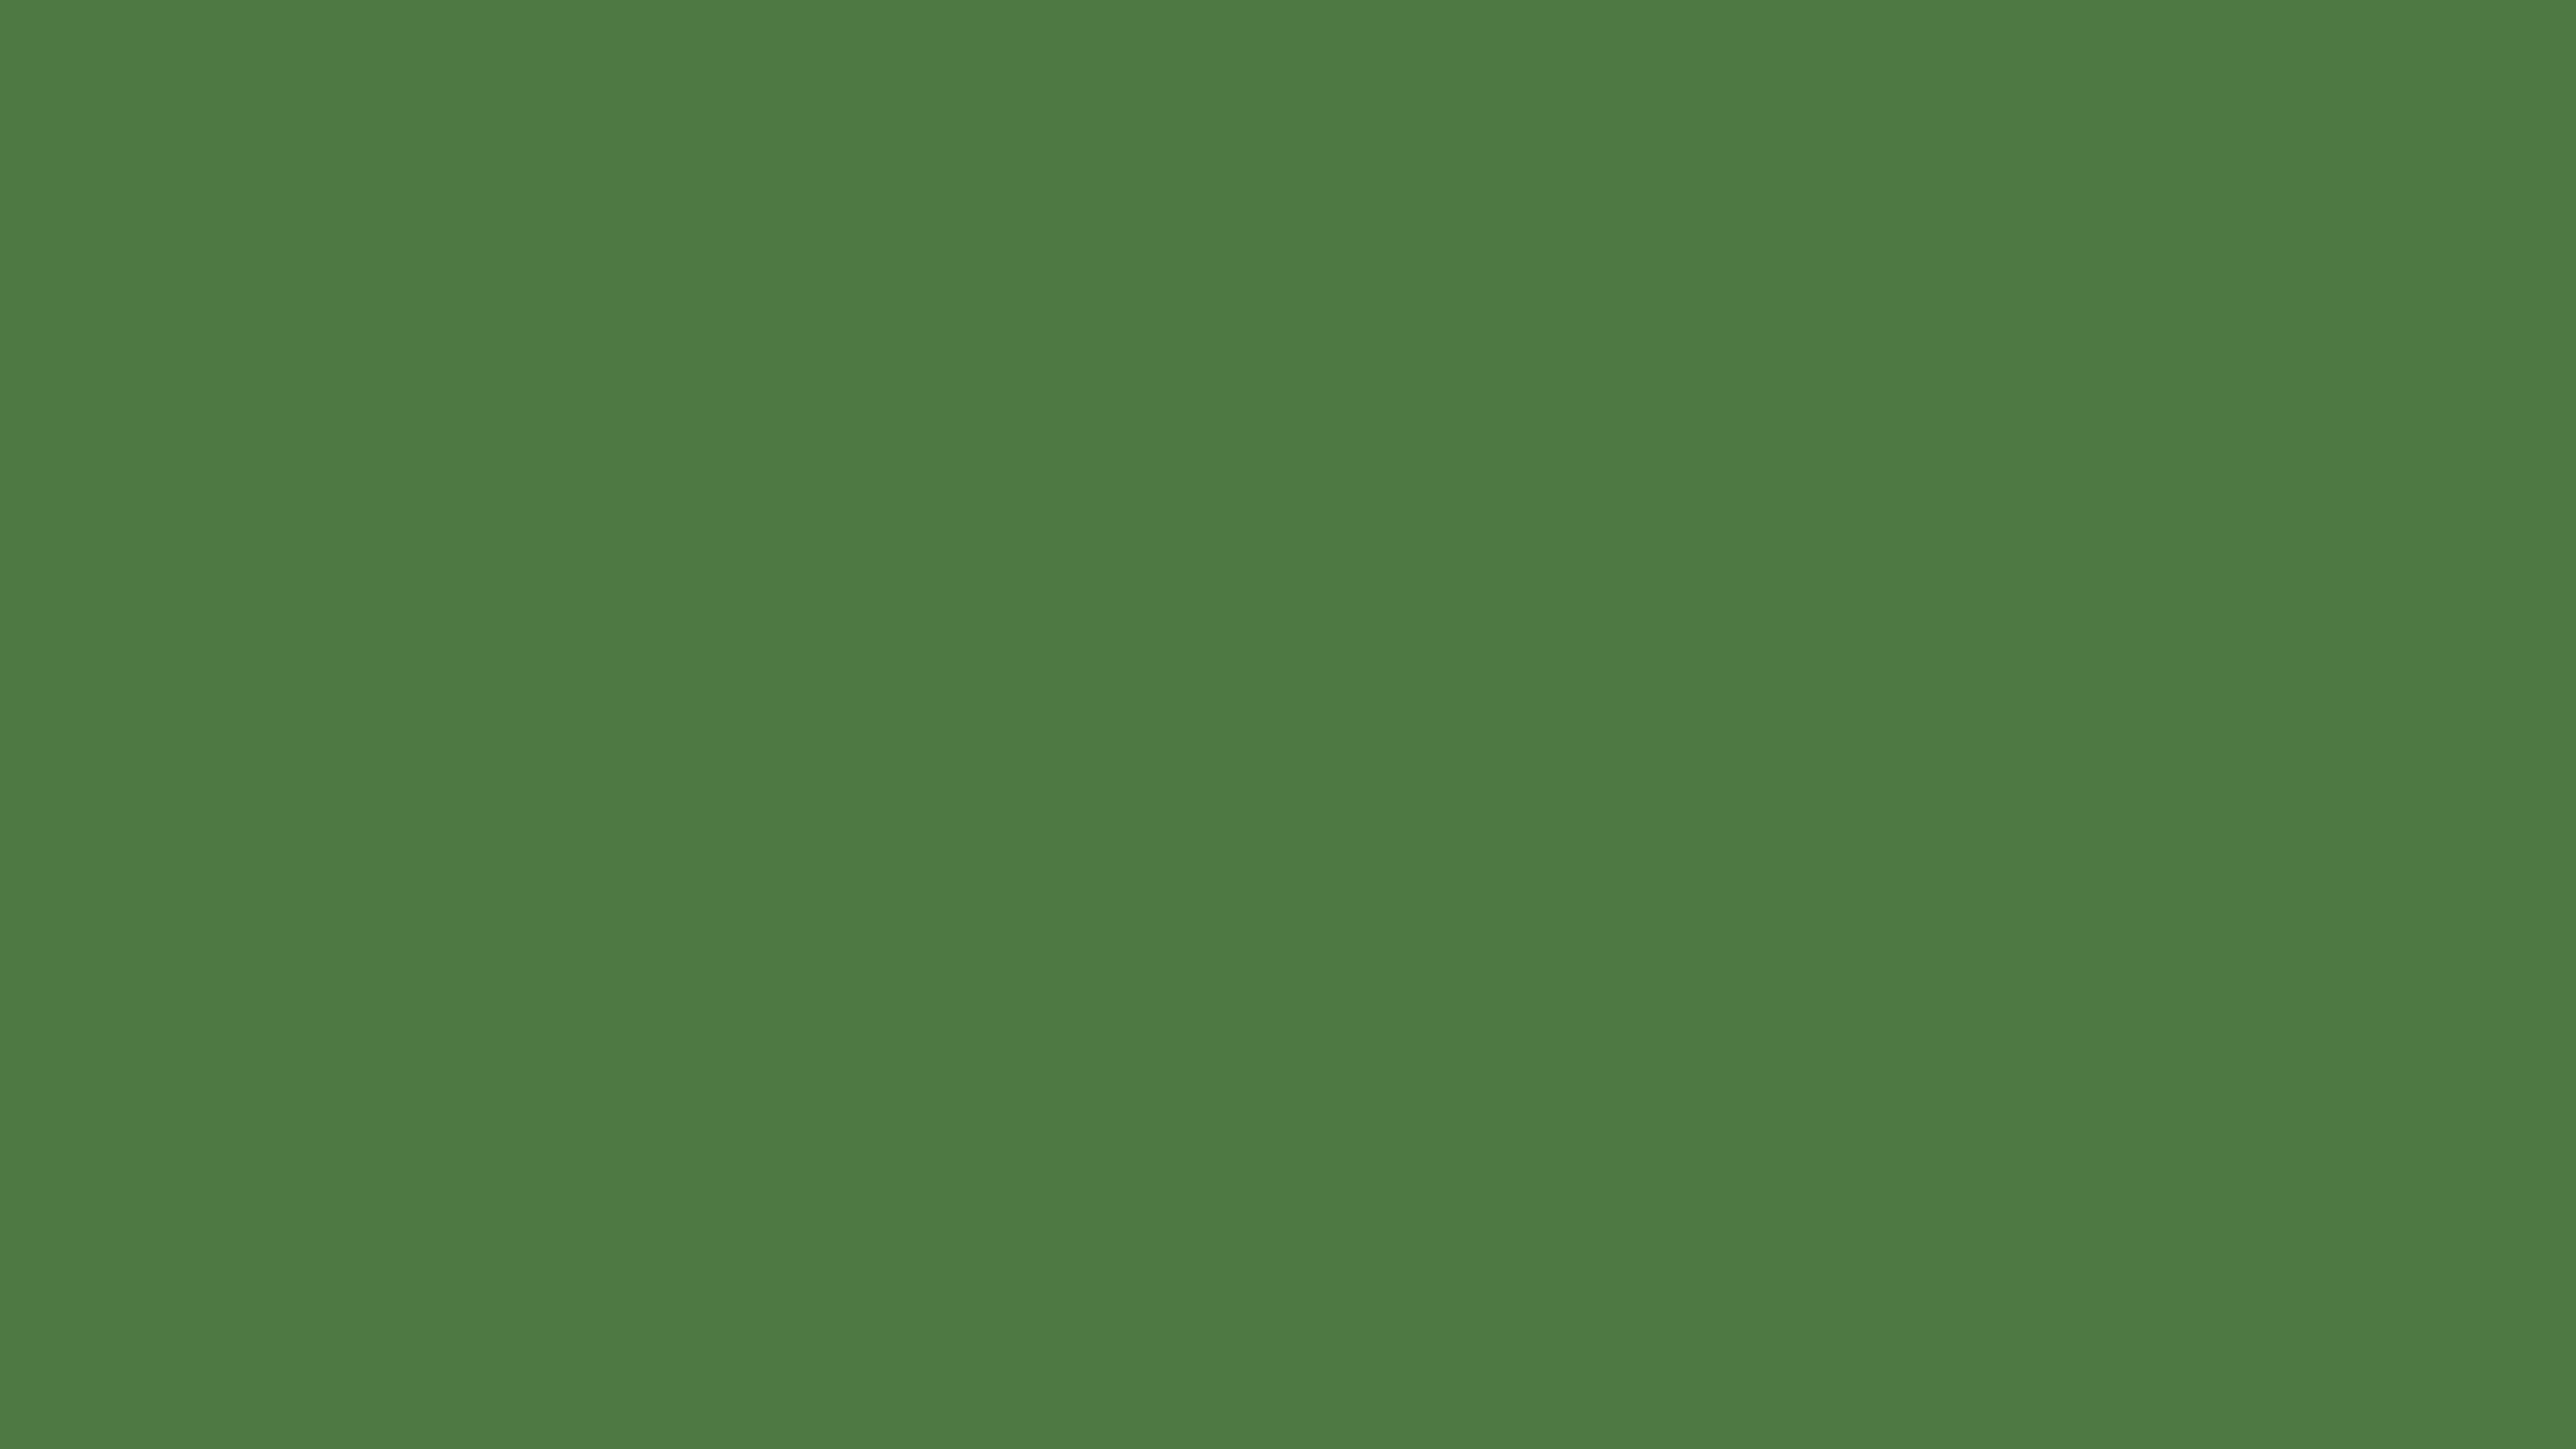 5120x2880 Fern Green Solid Color Background